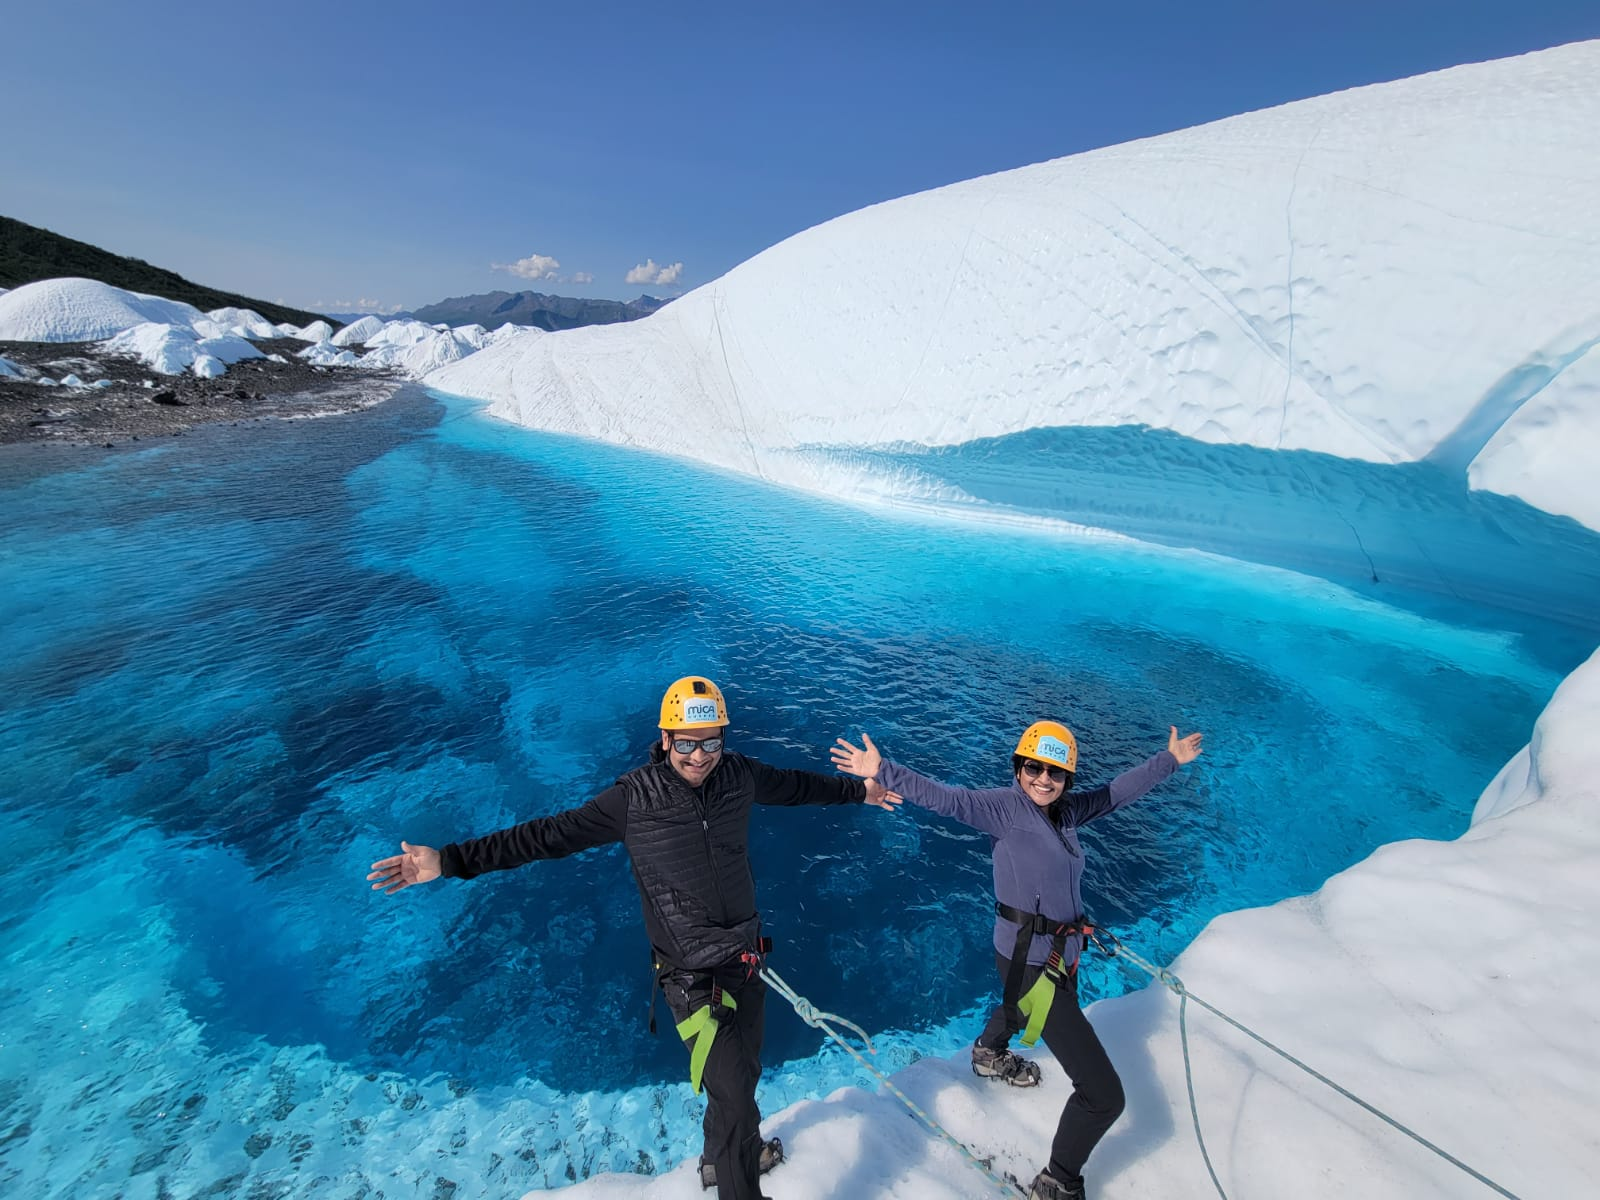 Explorers on ropes over blue glacial lake